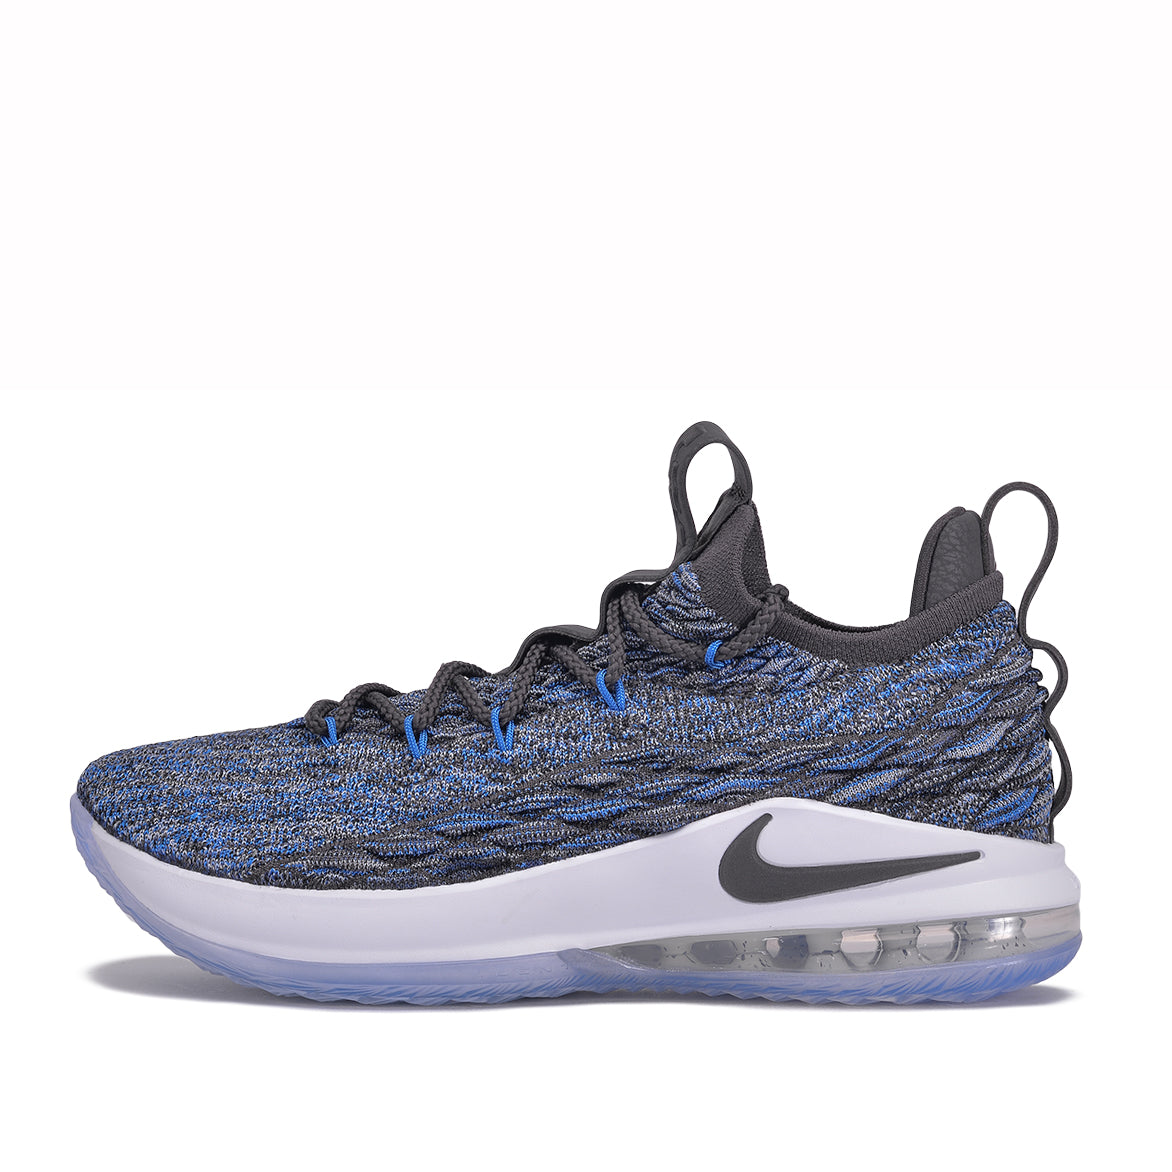 LEBRON XV LOW - SIGNAL BLUE